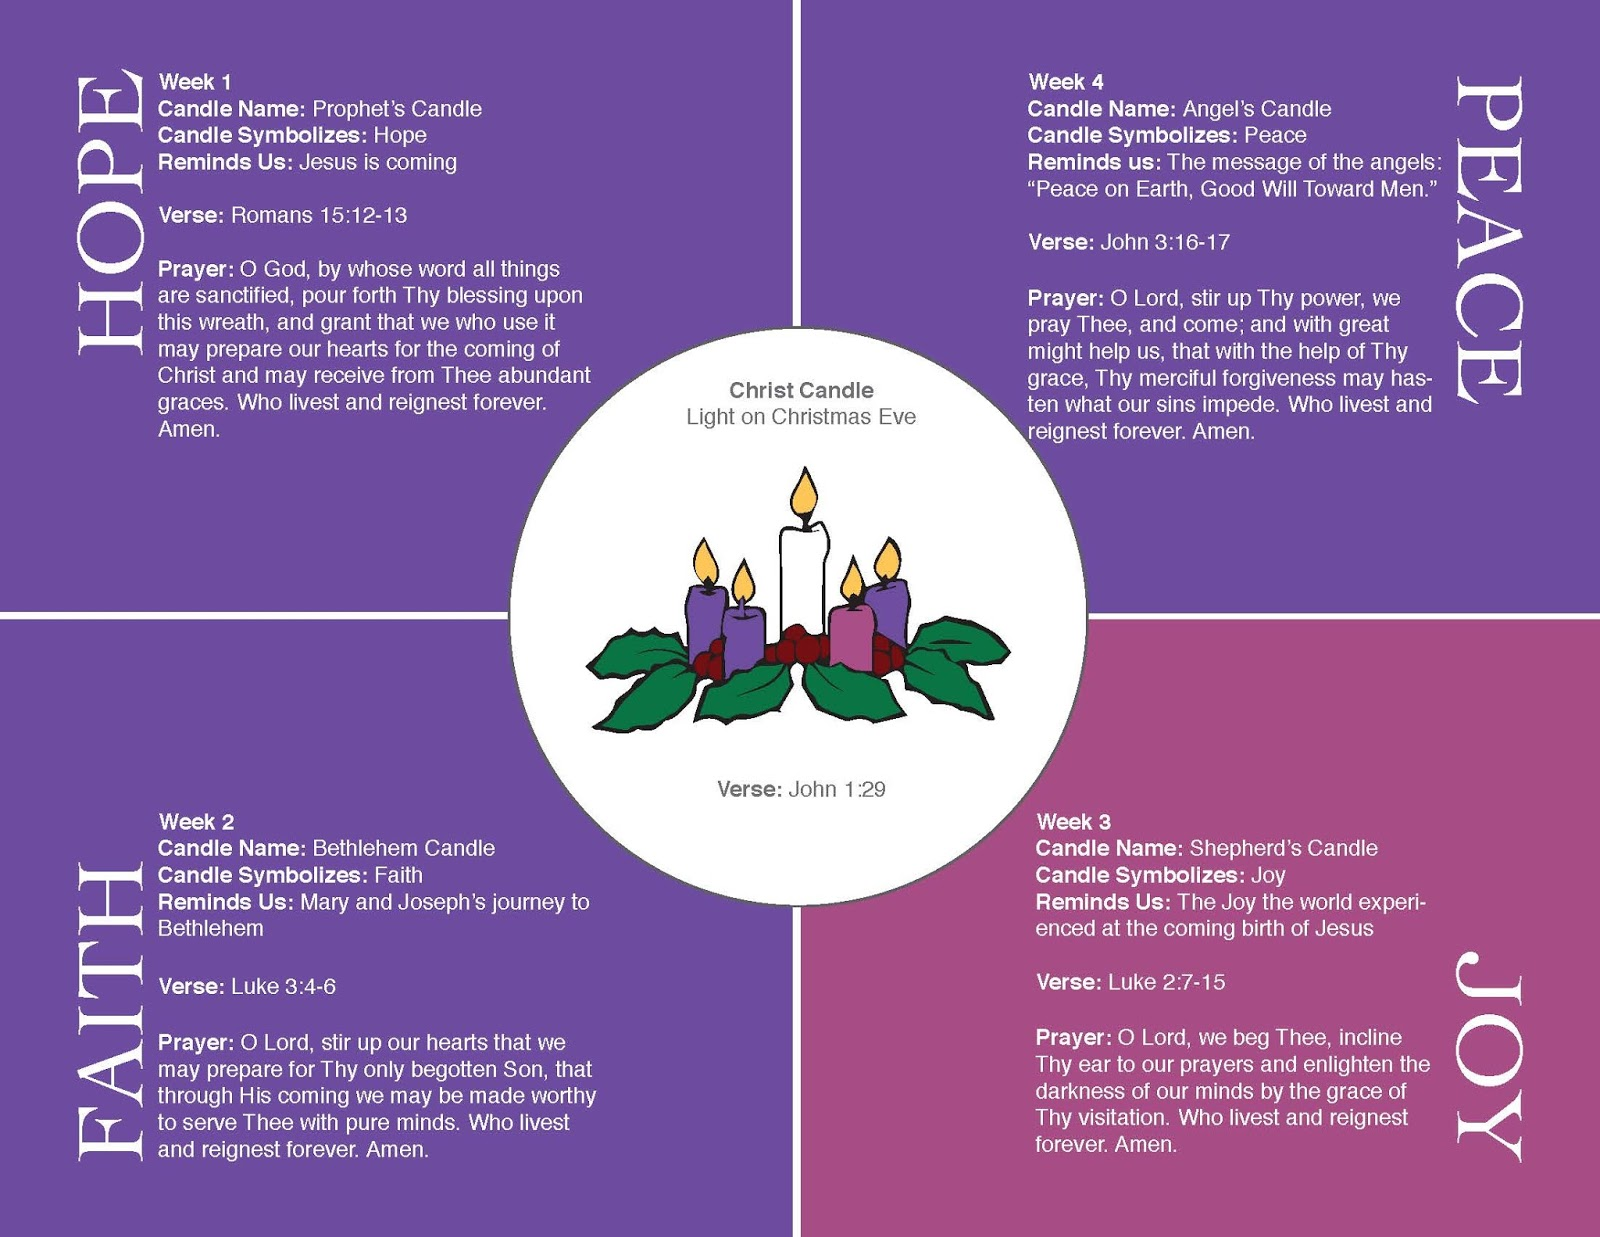 practically living advent wreath tradition with reflection and